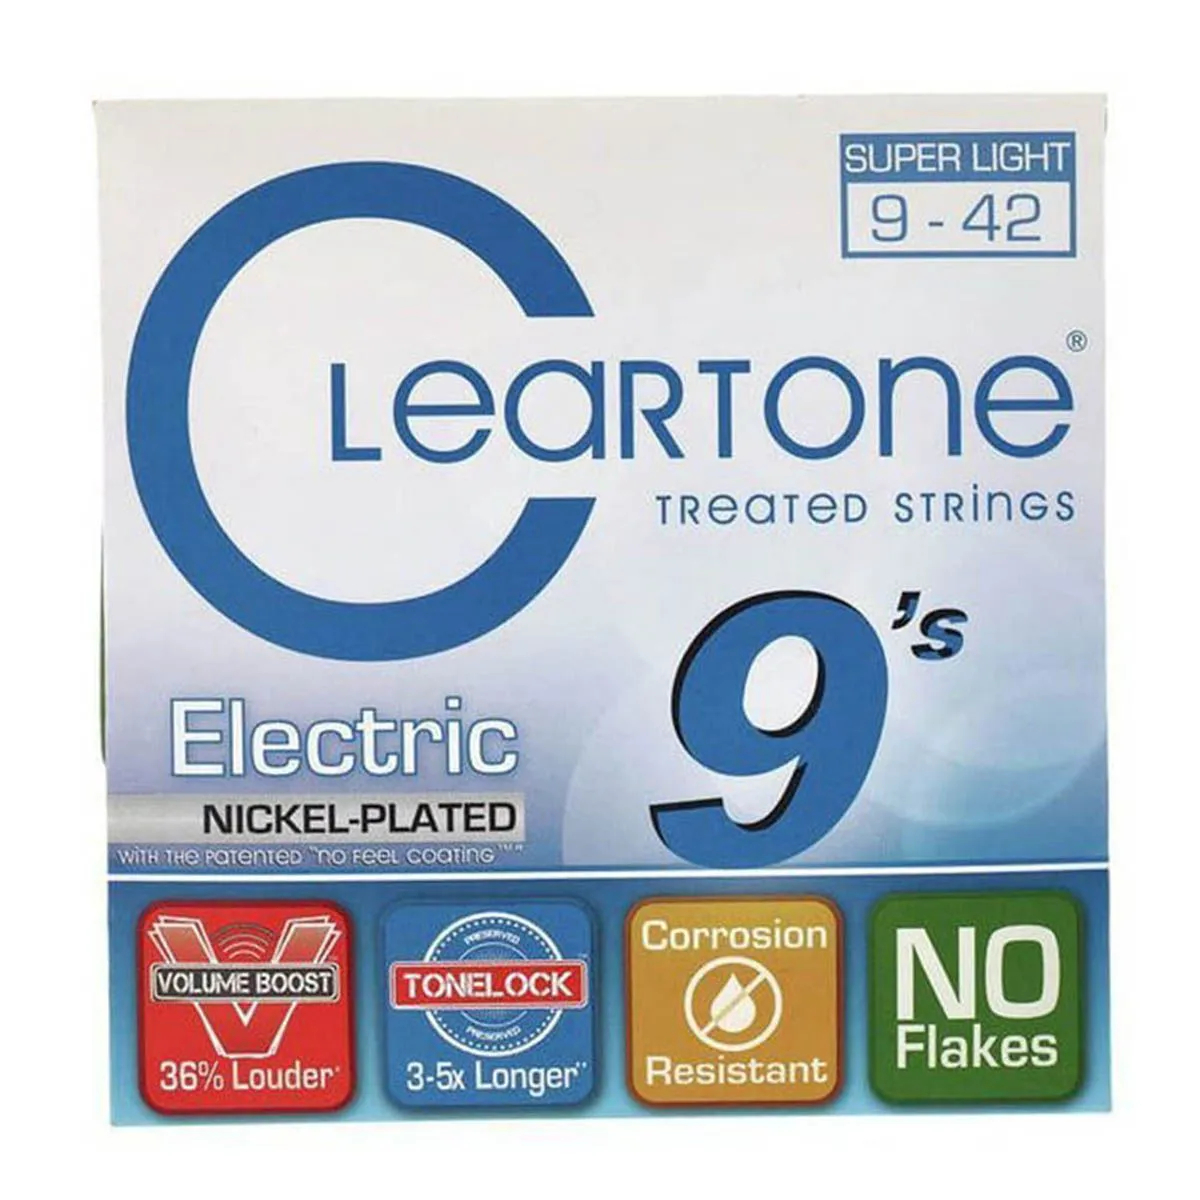 Encordoamento Cleartone 9409 Electric .09/.42 Guitarra